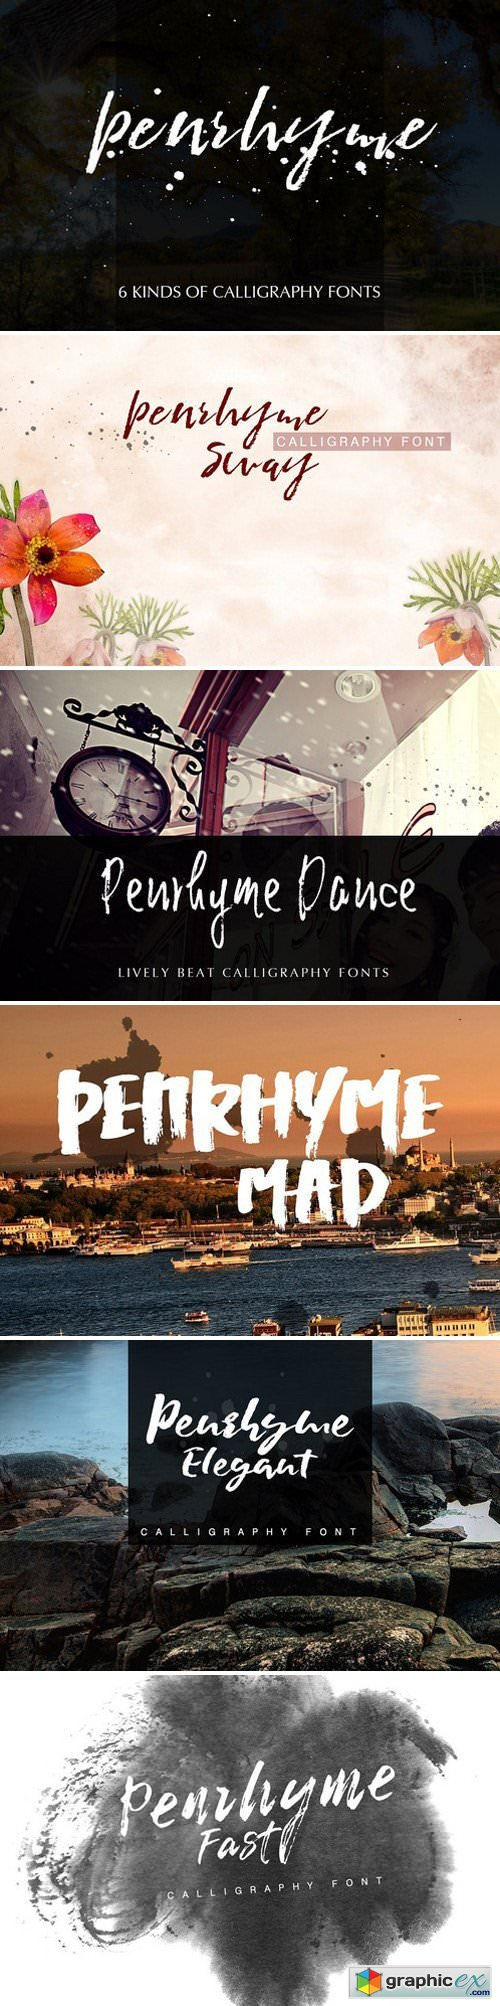 Penrhyme Calligraphy Font